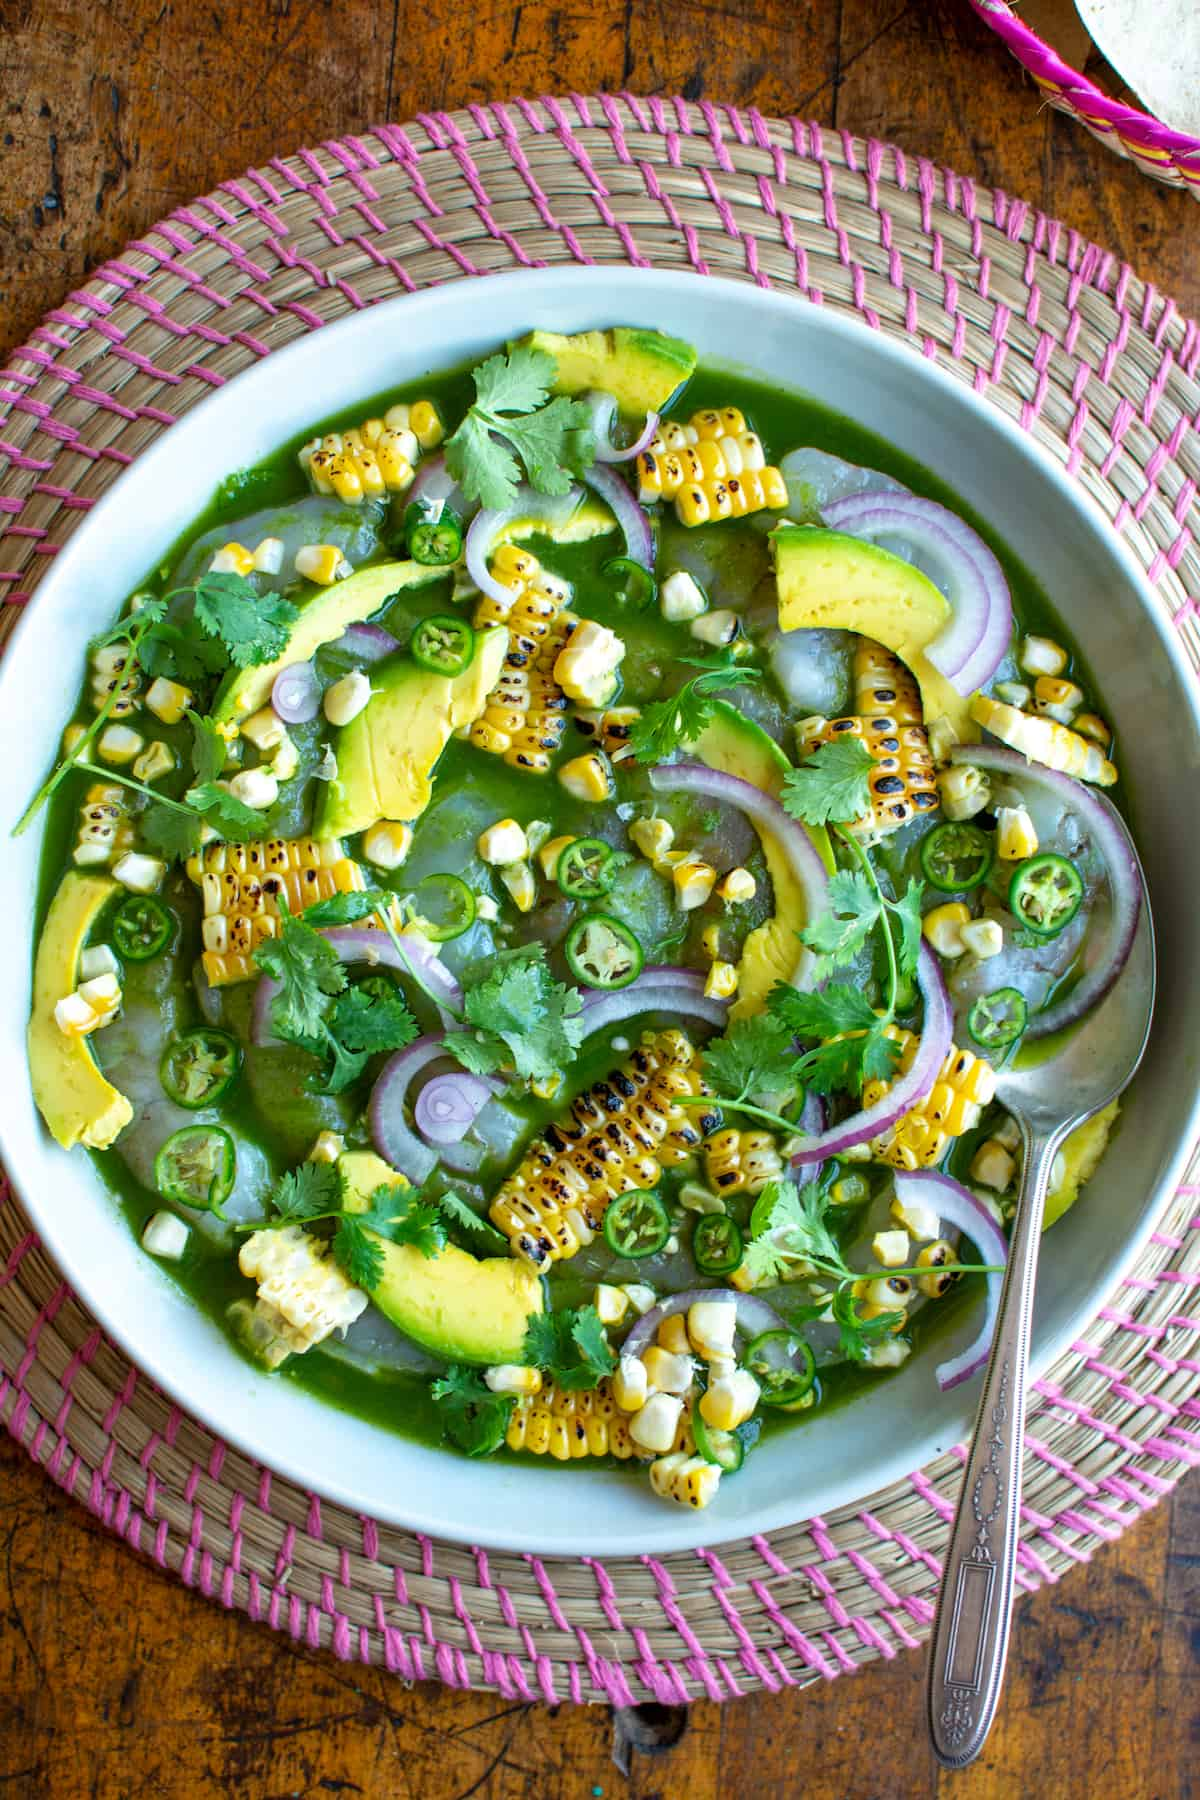 How to make Shrimp Aguachile Verde, one of Mexico's most delicious seafood dishes. This no-cook appetizer takes raw shrimp and marinates them in a spicy mixture of serrano peppers, lime juice, and cucumber. Serve with tostadas for a refreshing summertime recipe. #holajalapeno #aguachile #shrimp #nocook